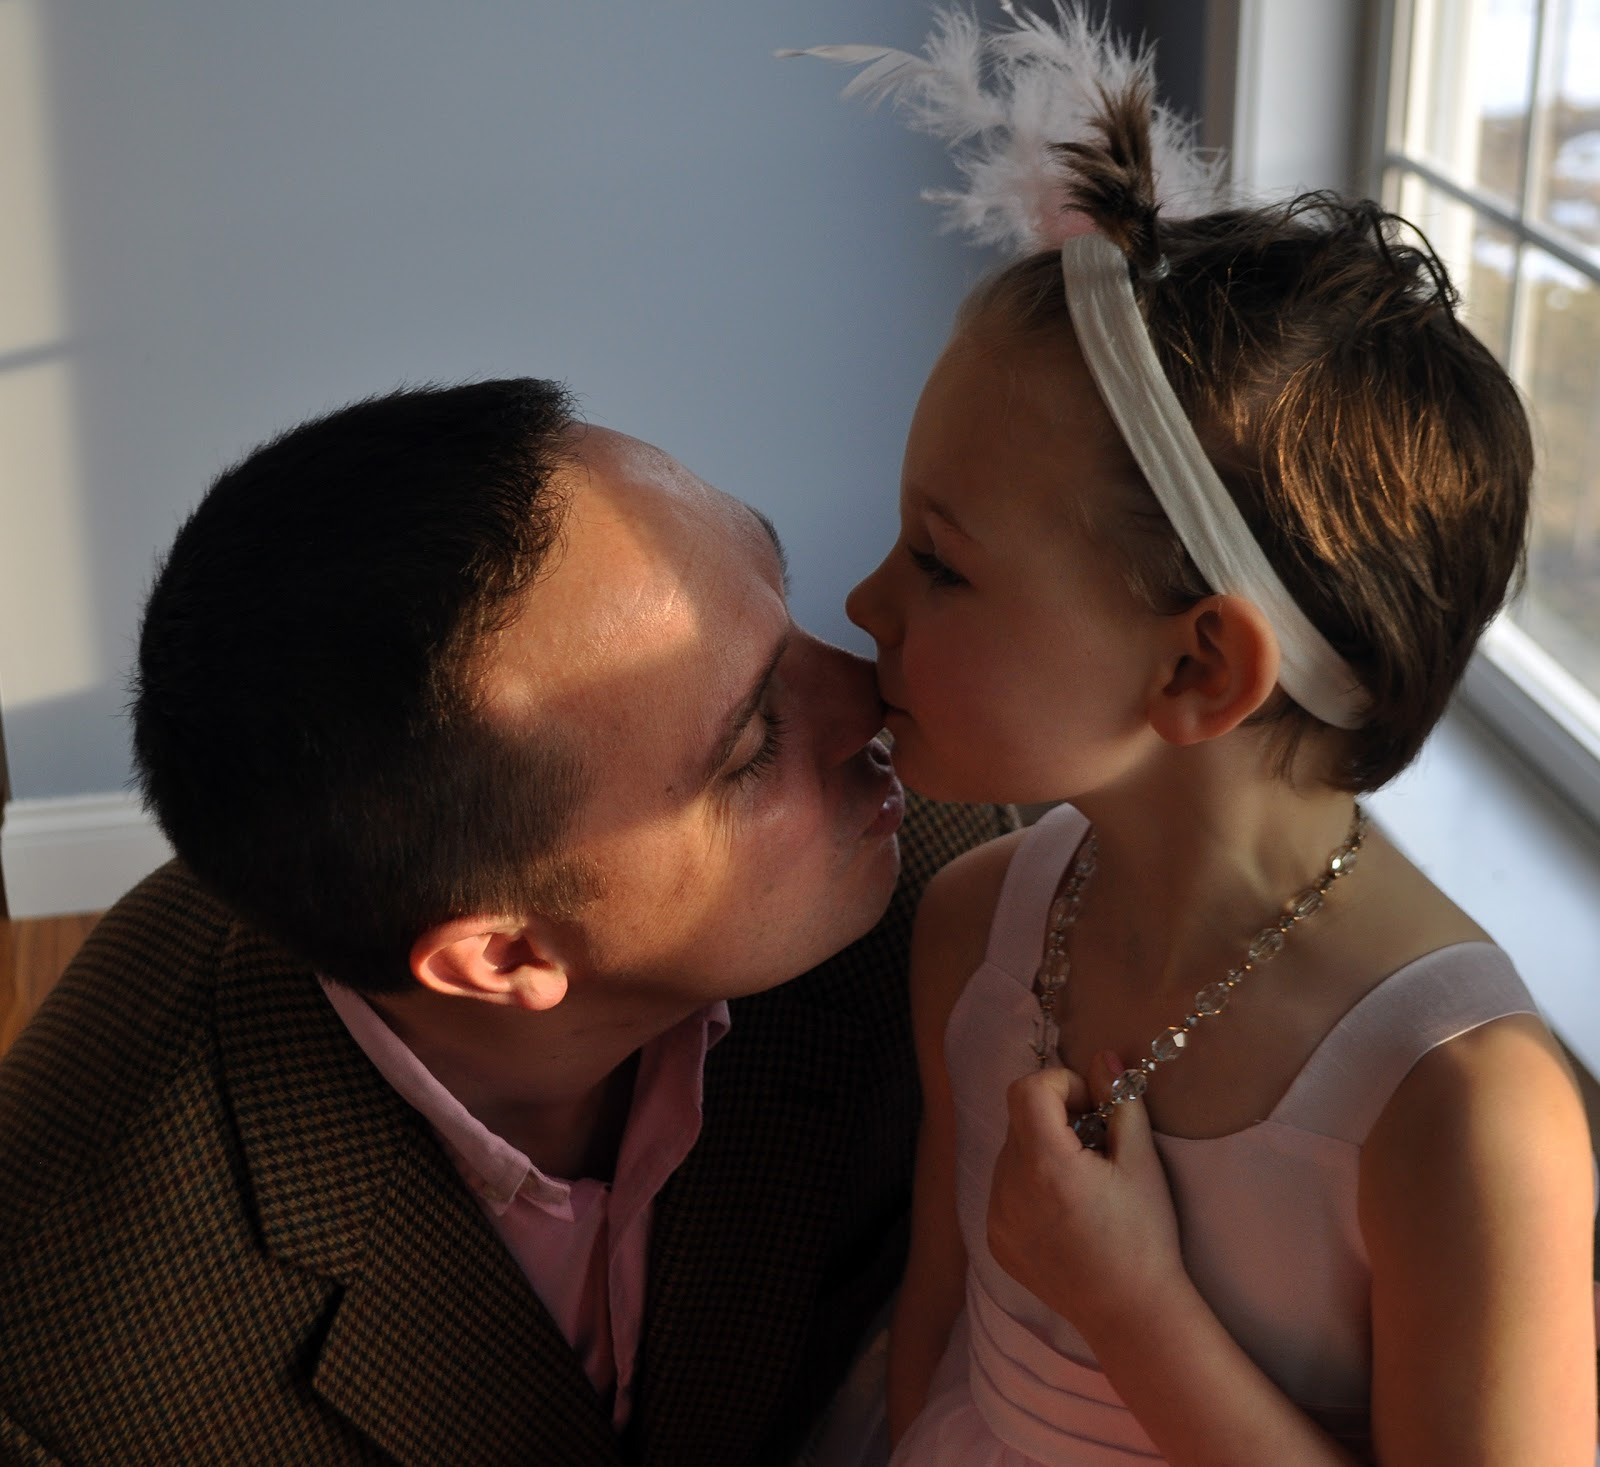 Nice. Nudist father daughter dance view